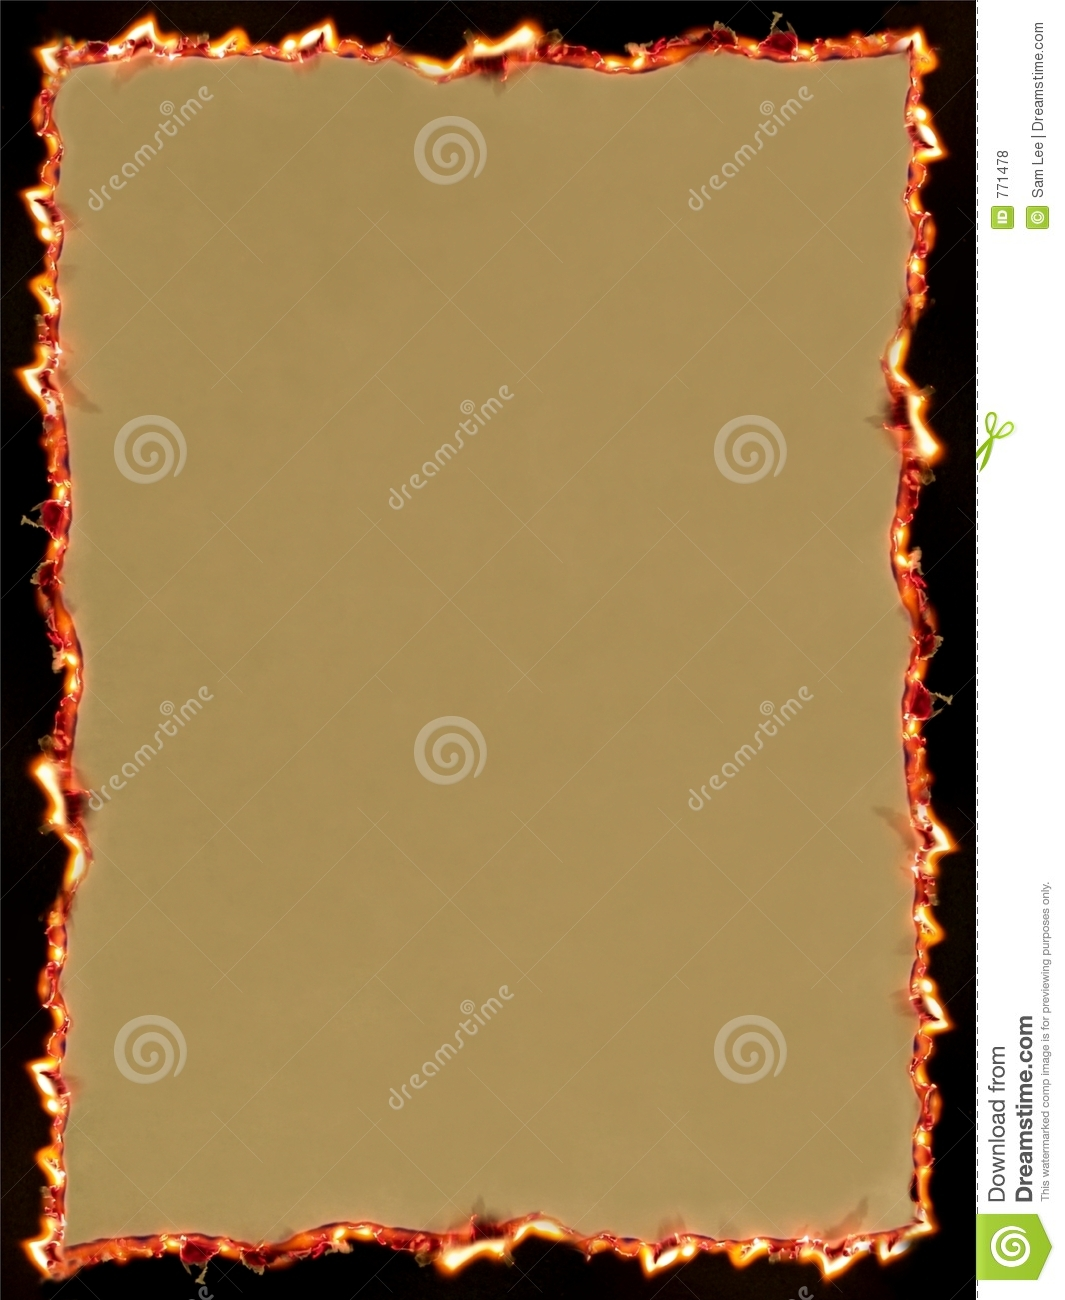 Grunge Paper On Fire Royalty Free Stock Photos - Image: 771478